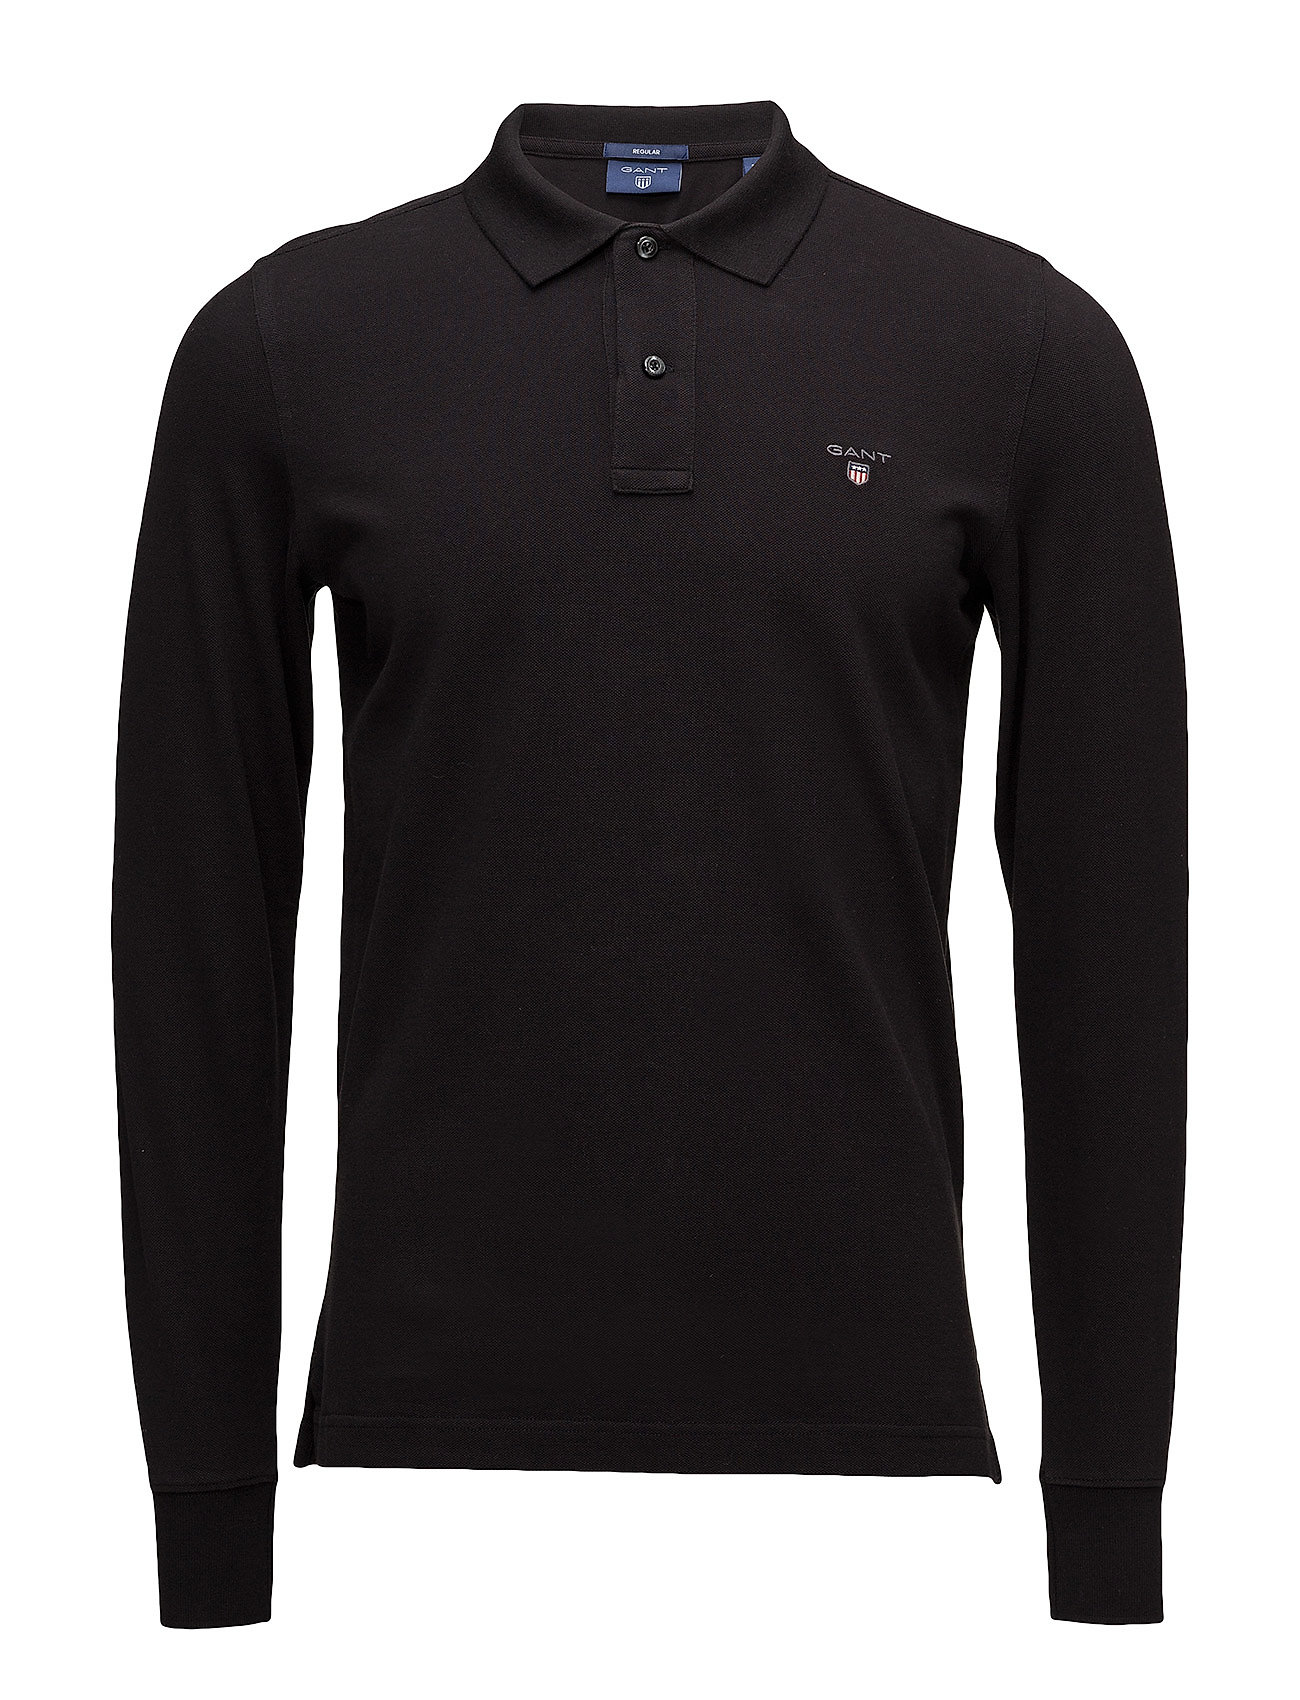 Gant THE ORIGINAL PIQUE  LS RUGGER - BLACK